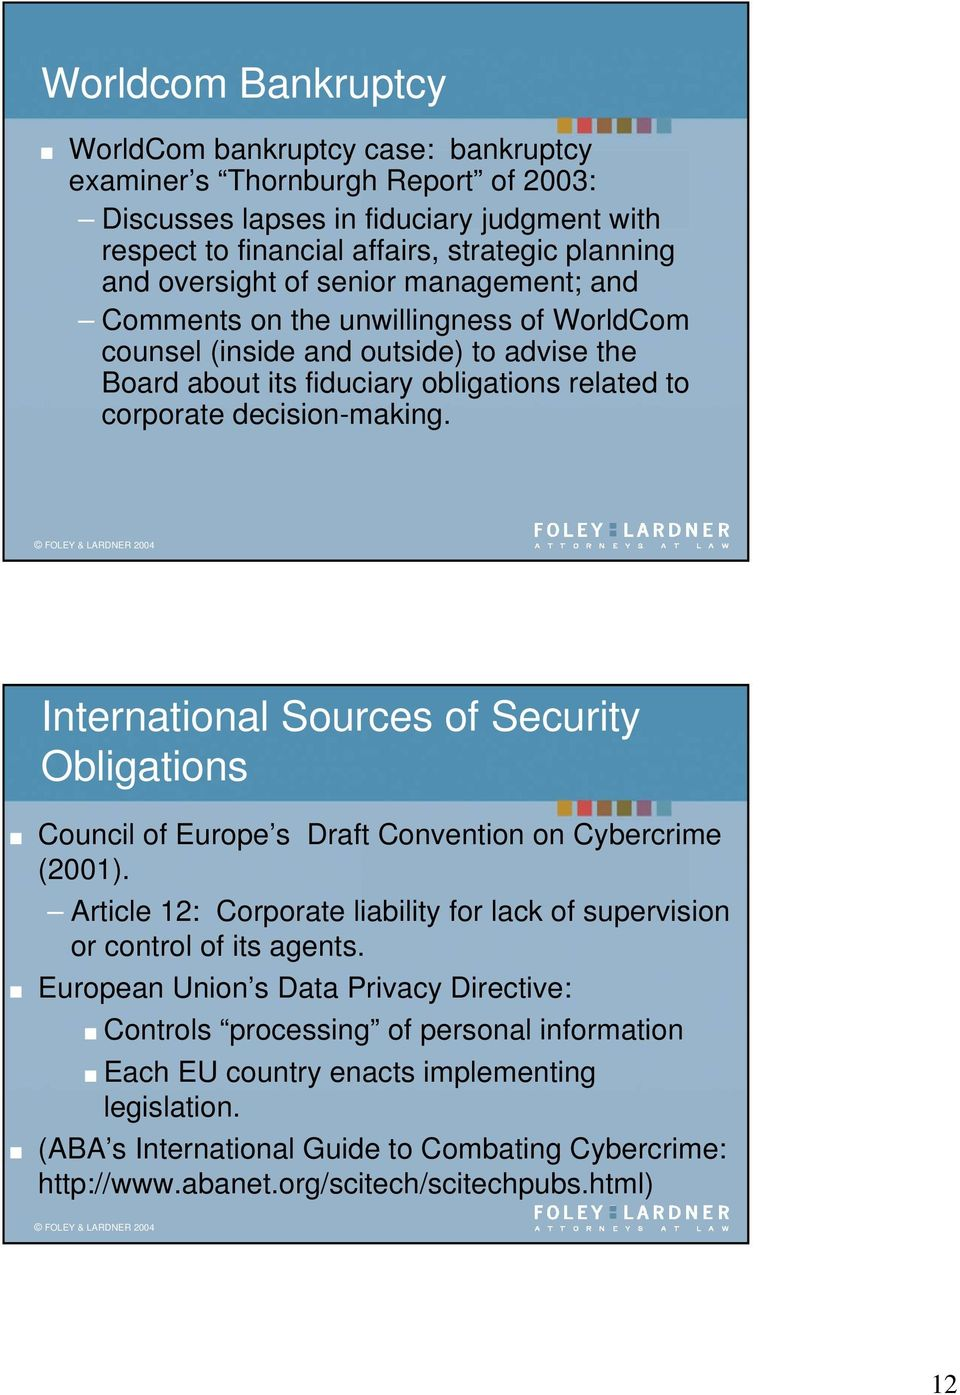 International Sources of Security Obligations Council of Europe s Draft Convention on Cybercrime (2001). Article 12: Corporate liability for lack of supervision or control of its agents.